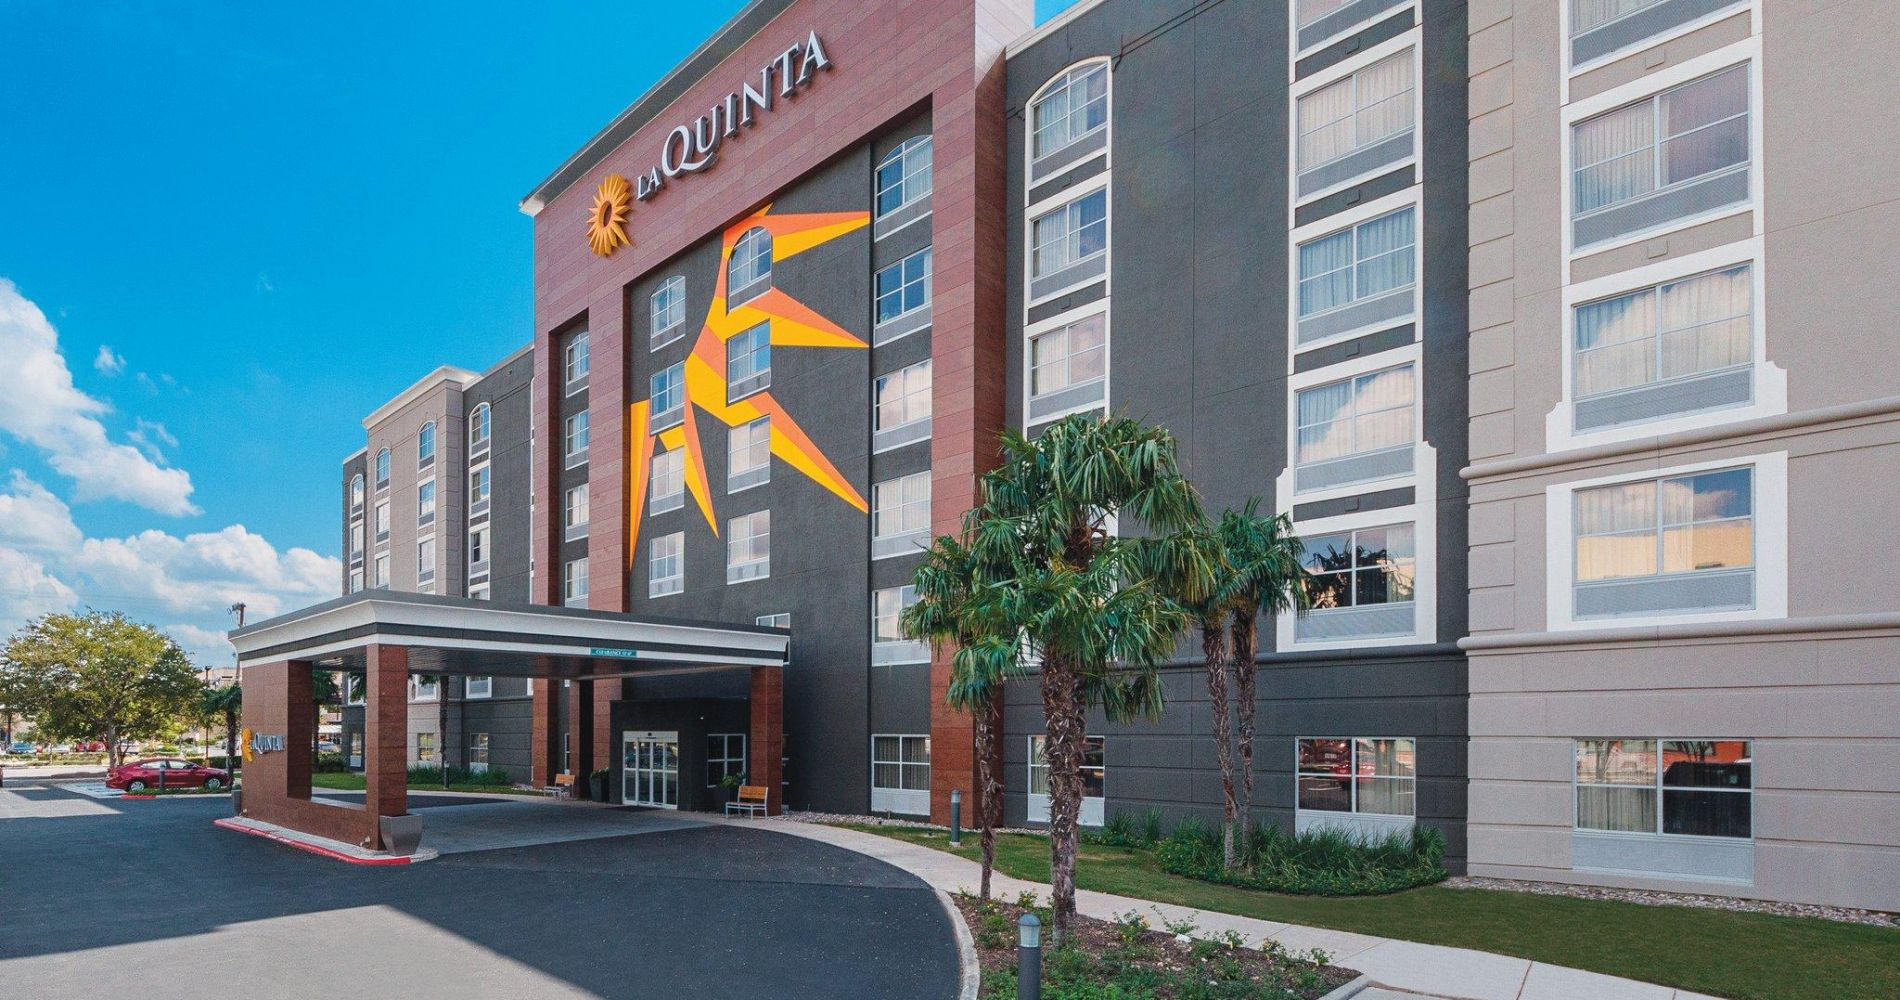 La Quinta Inn Amp Suites San Antonio Downtown Best Hotels